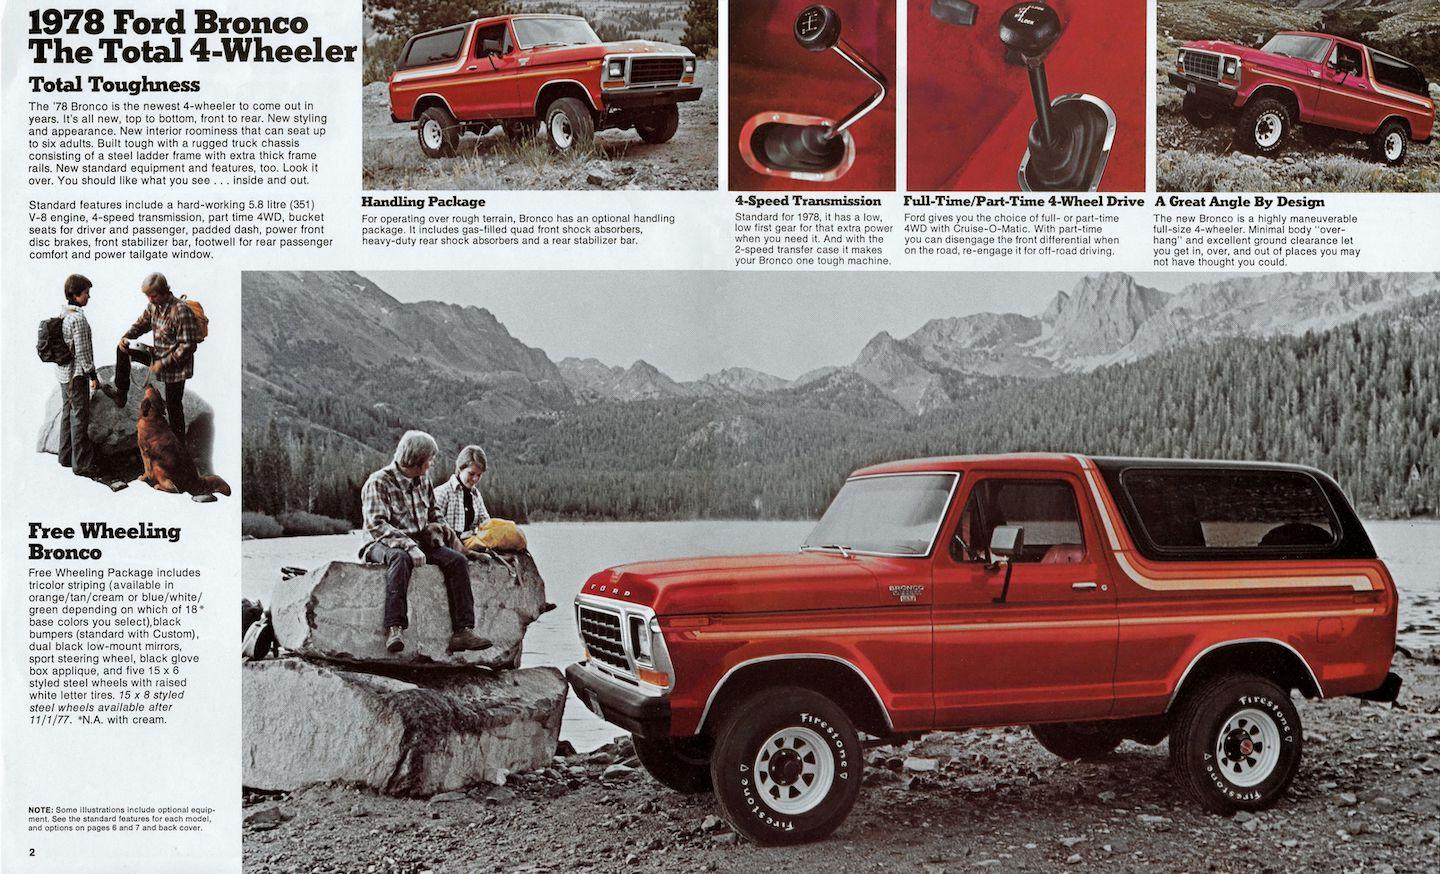 second-generation Ford Bronco, Ford Bronco, Bronco, second-generation Bronco